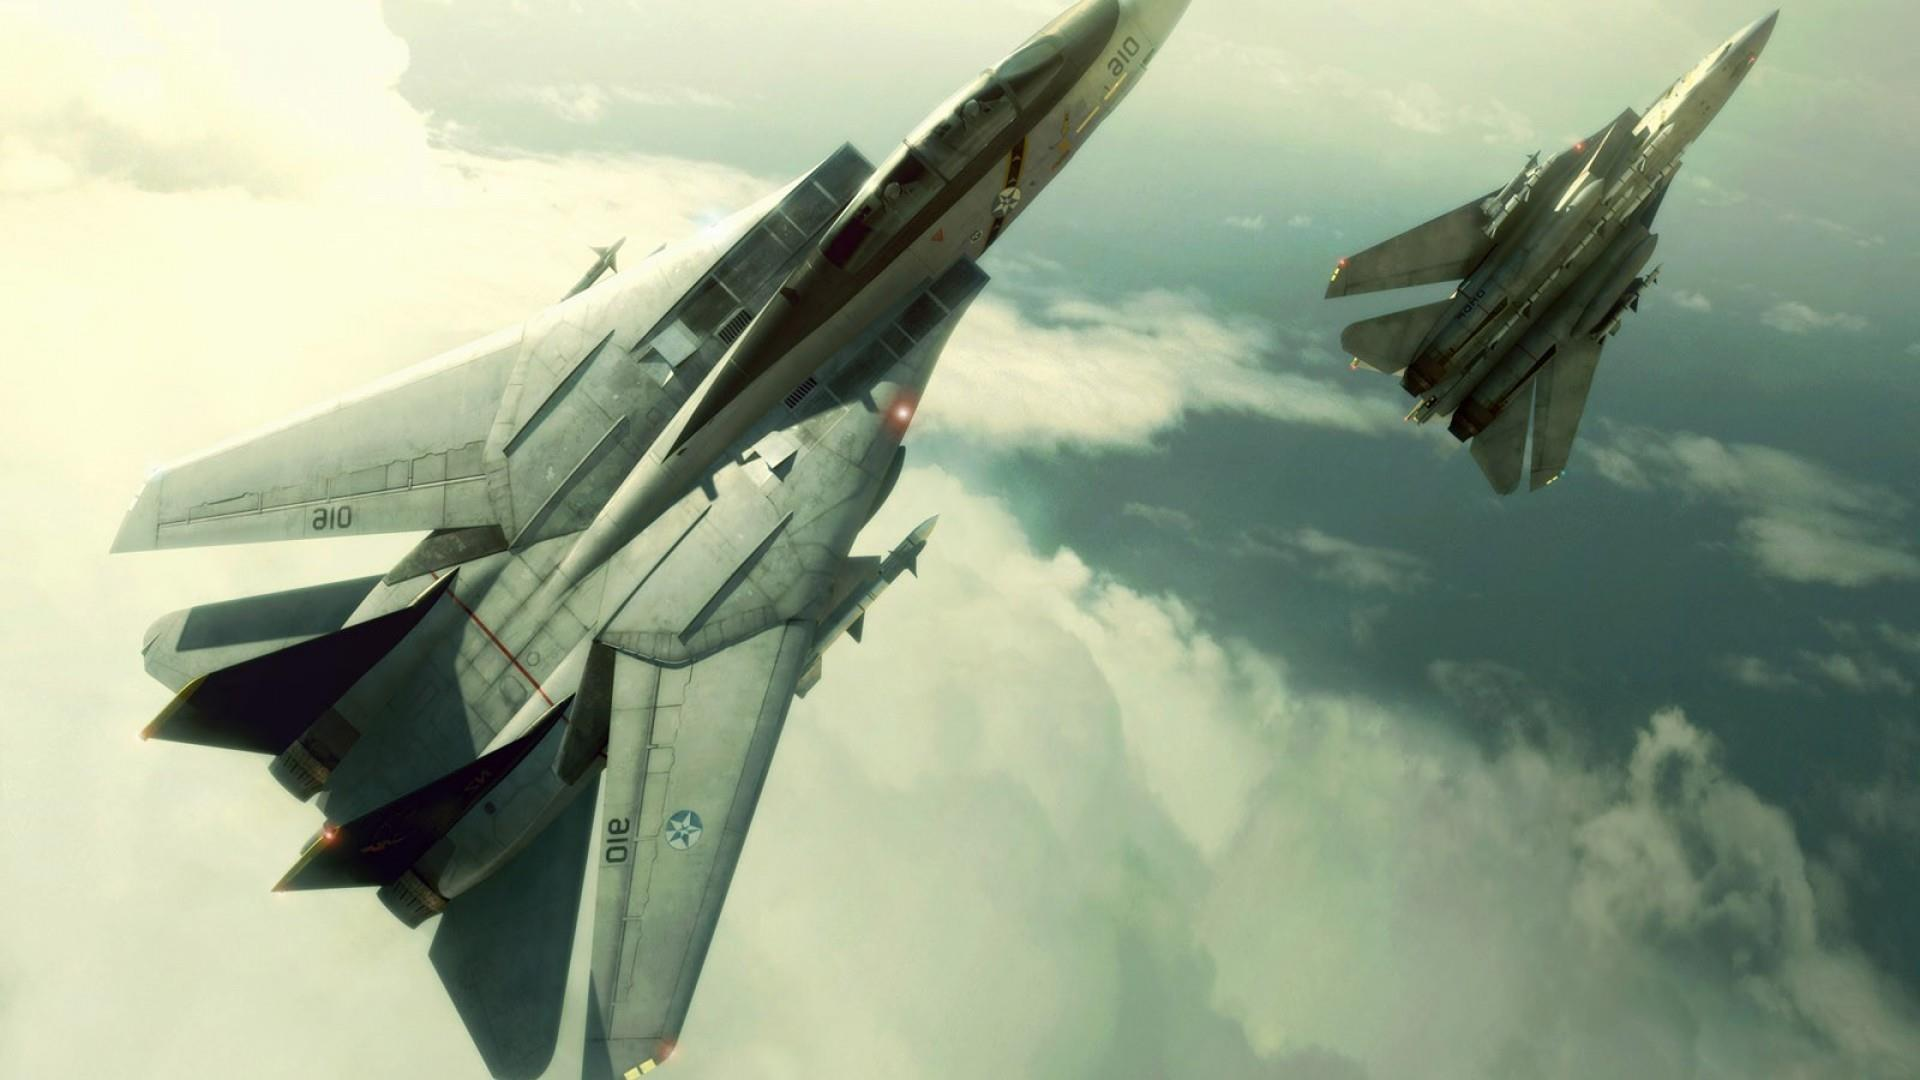 Aircraft Military Wallpaper For Android Apk Download